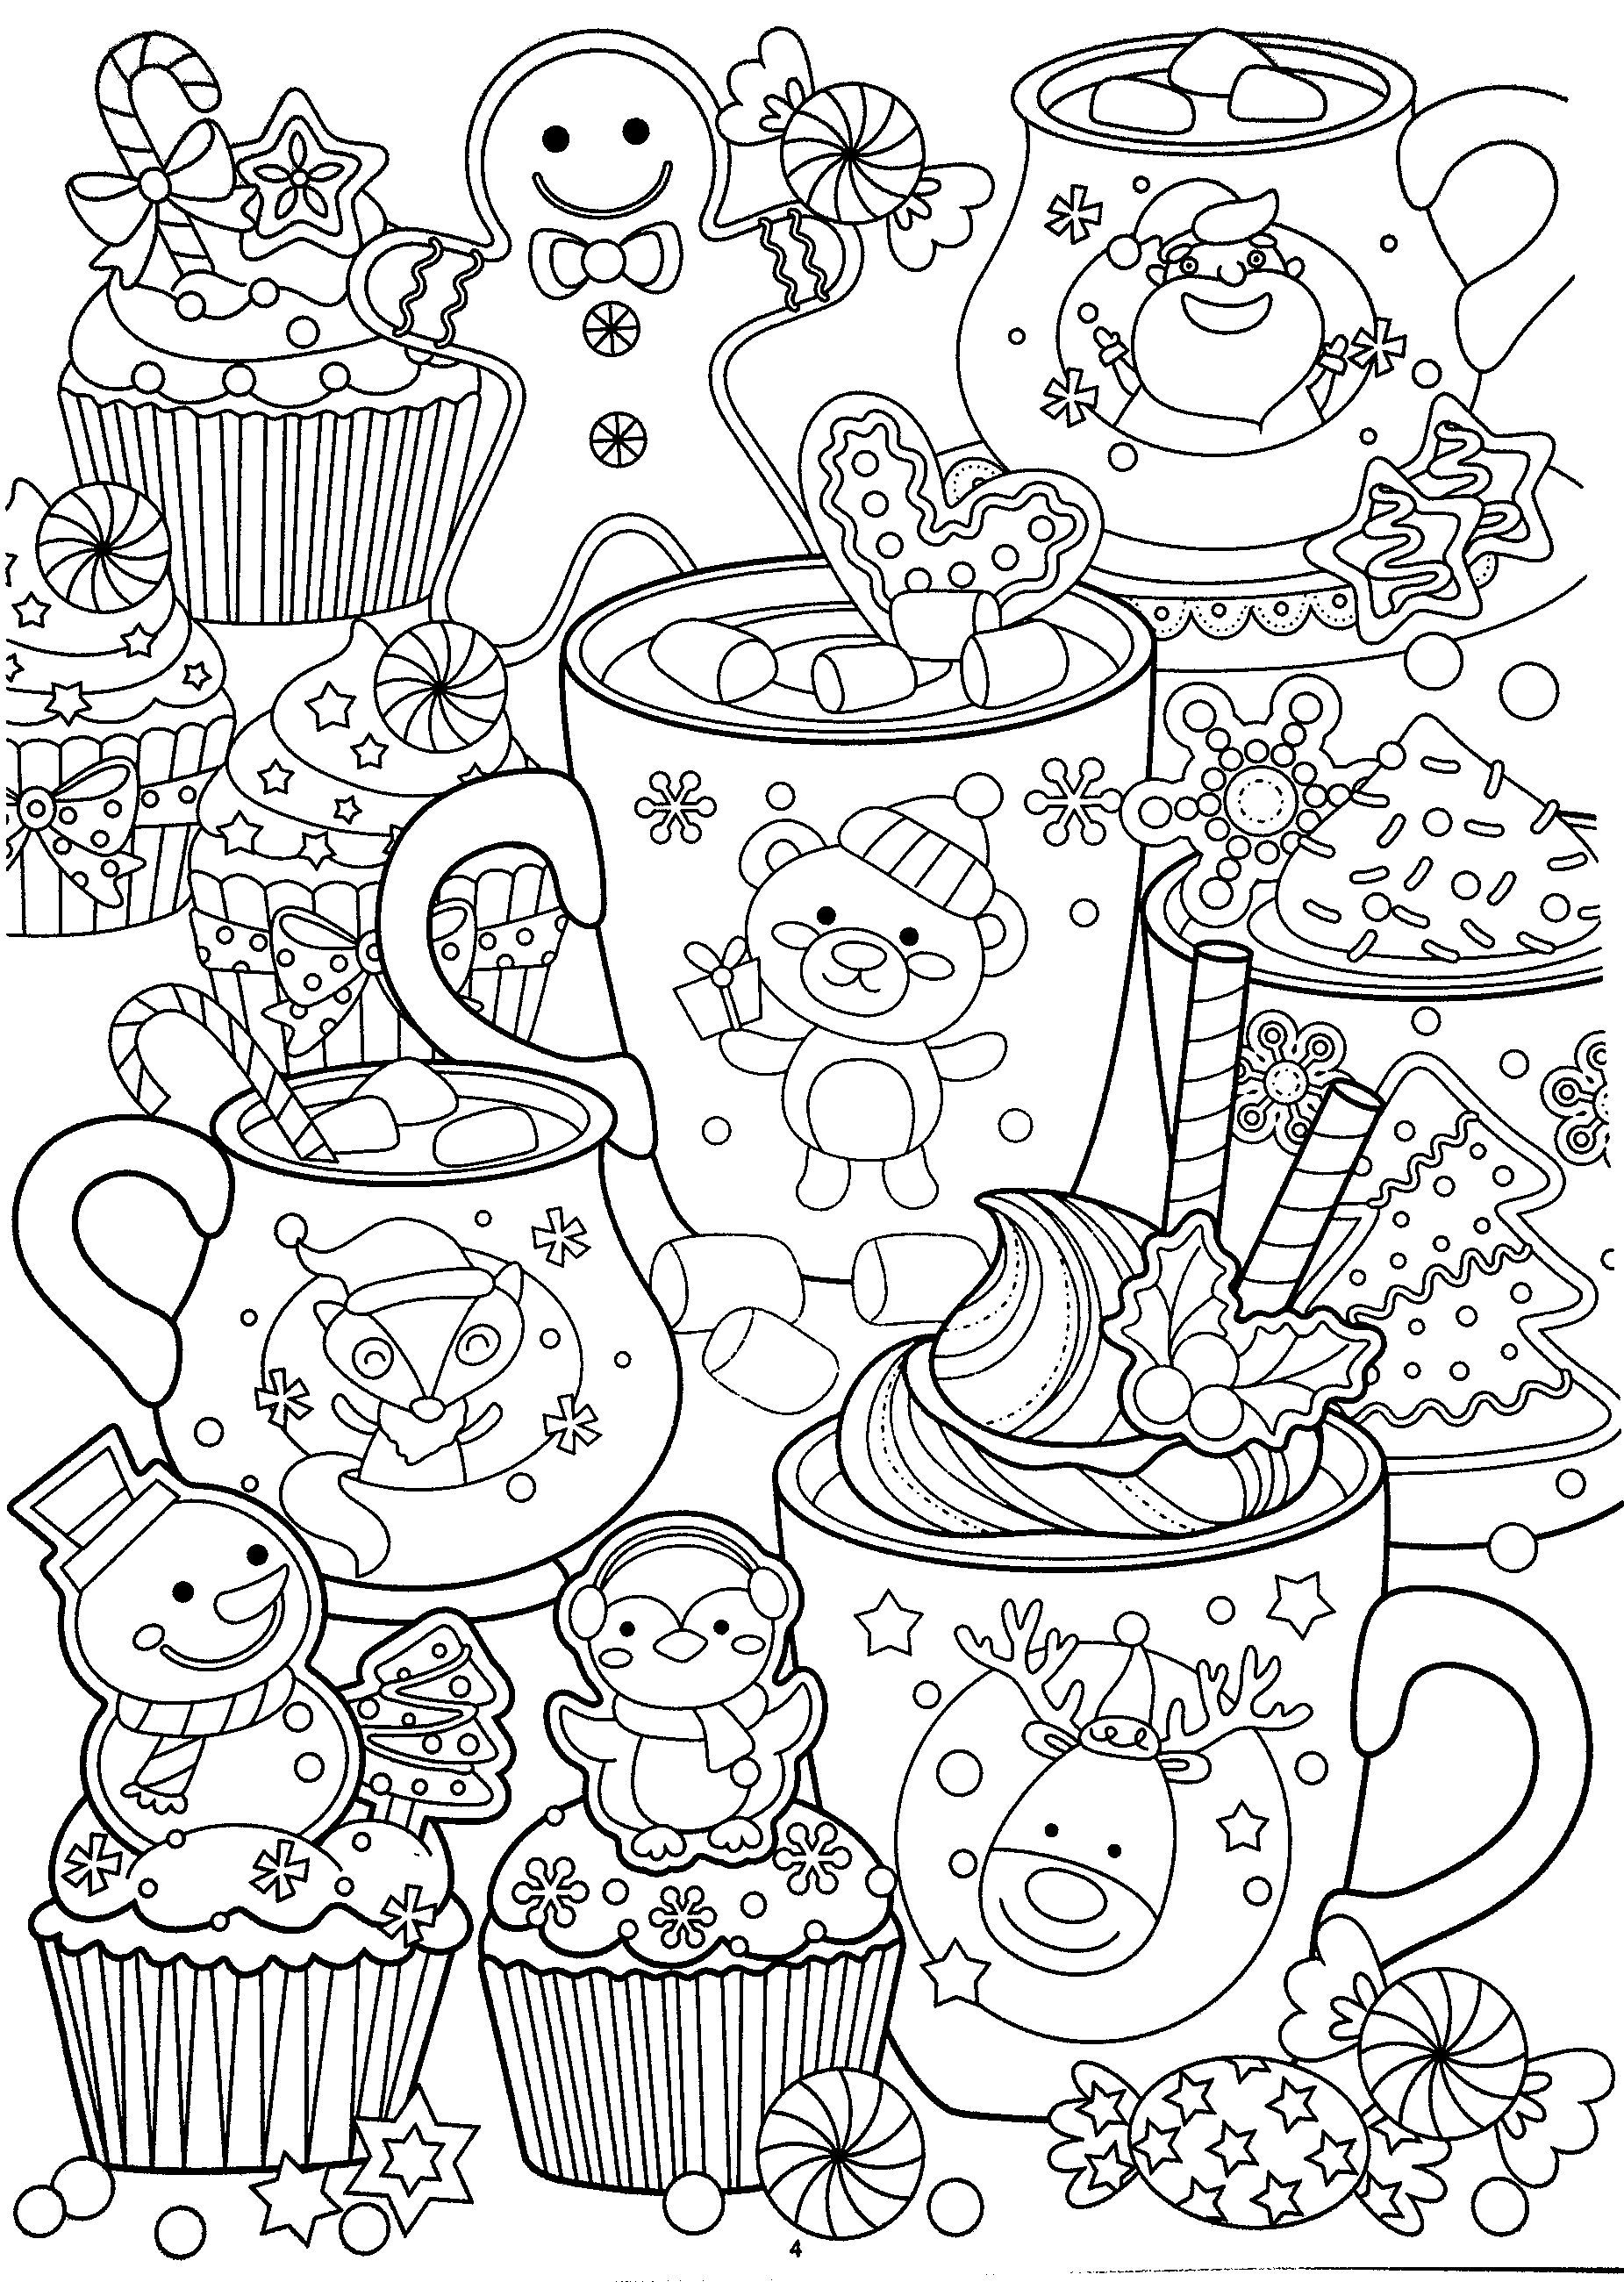 New Year Coloring Pages Christmas Coloring Pages New Year Coloring Pages Christmas Coloring Cards Christmas Coloring Sheets